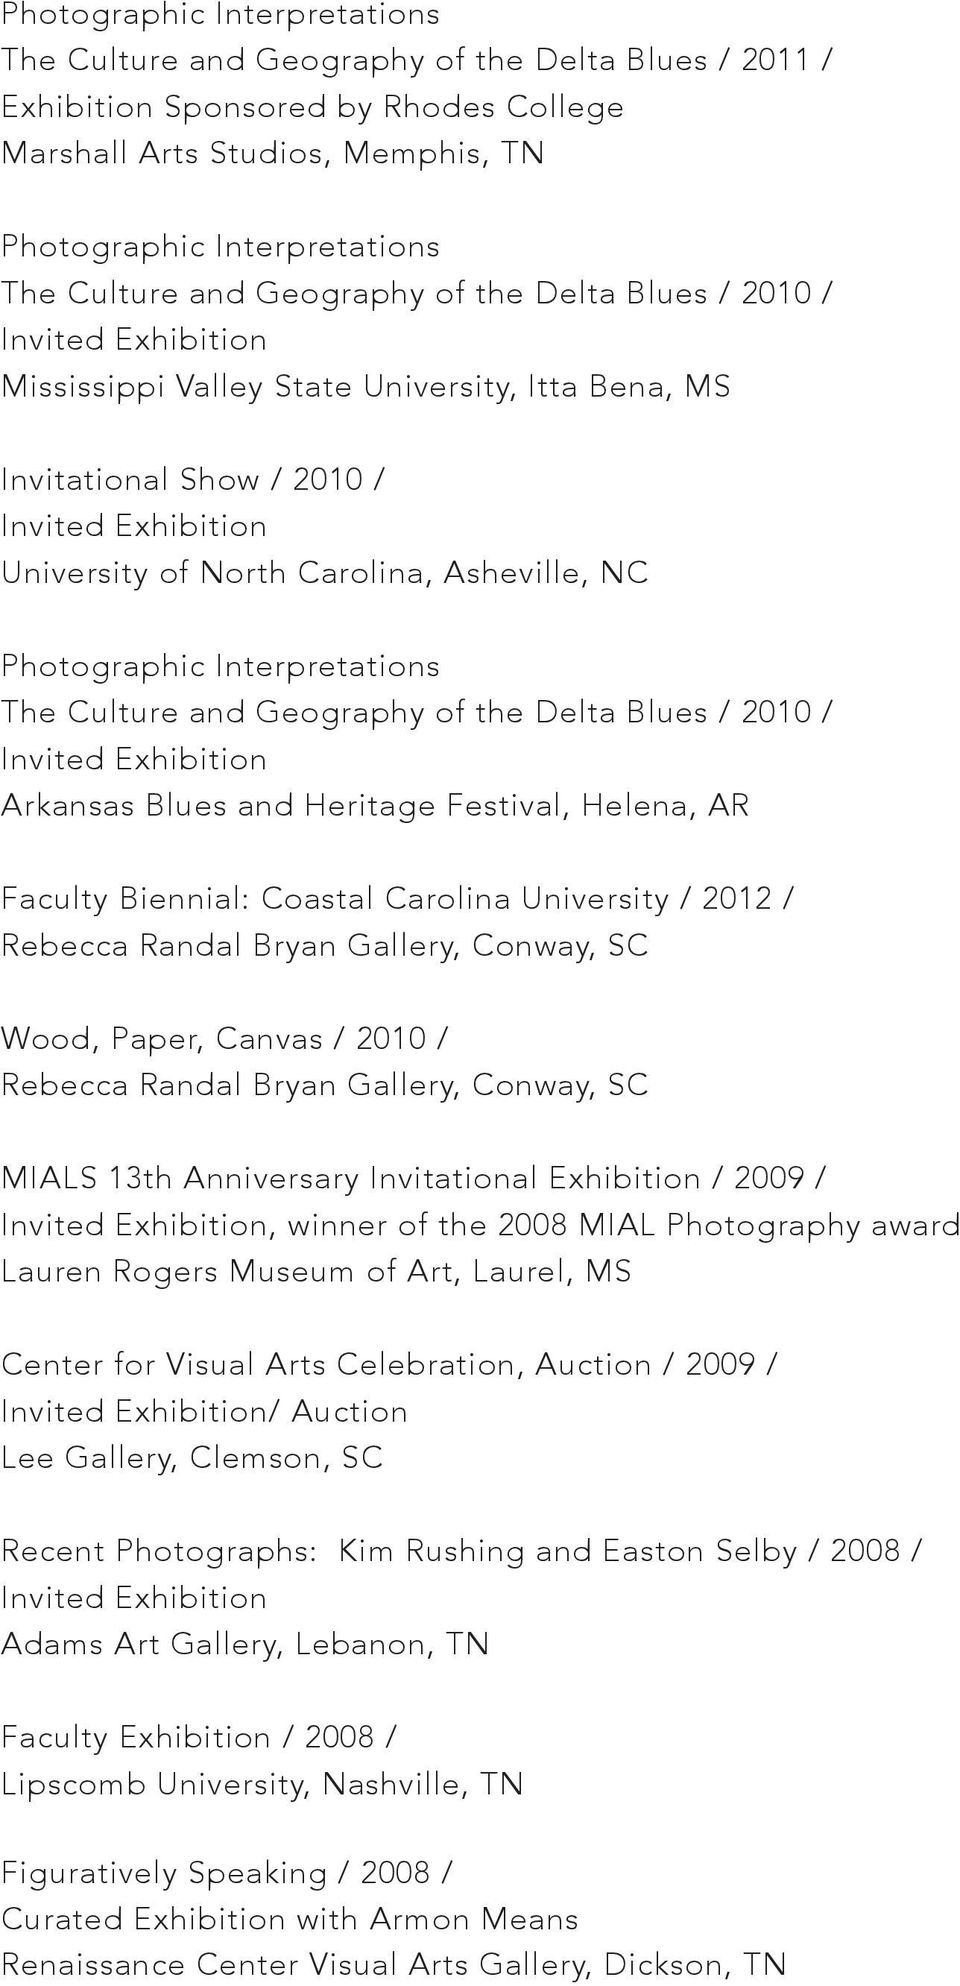 Culture and Geography of the Delta Blues / 2010 / Arkansas Blues and Heritage Festival, Helena, AR Faculty Biennial: Coastal Carolina University / 2012 / Rebecca Randal Bryan Gallery, Conway, SC